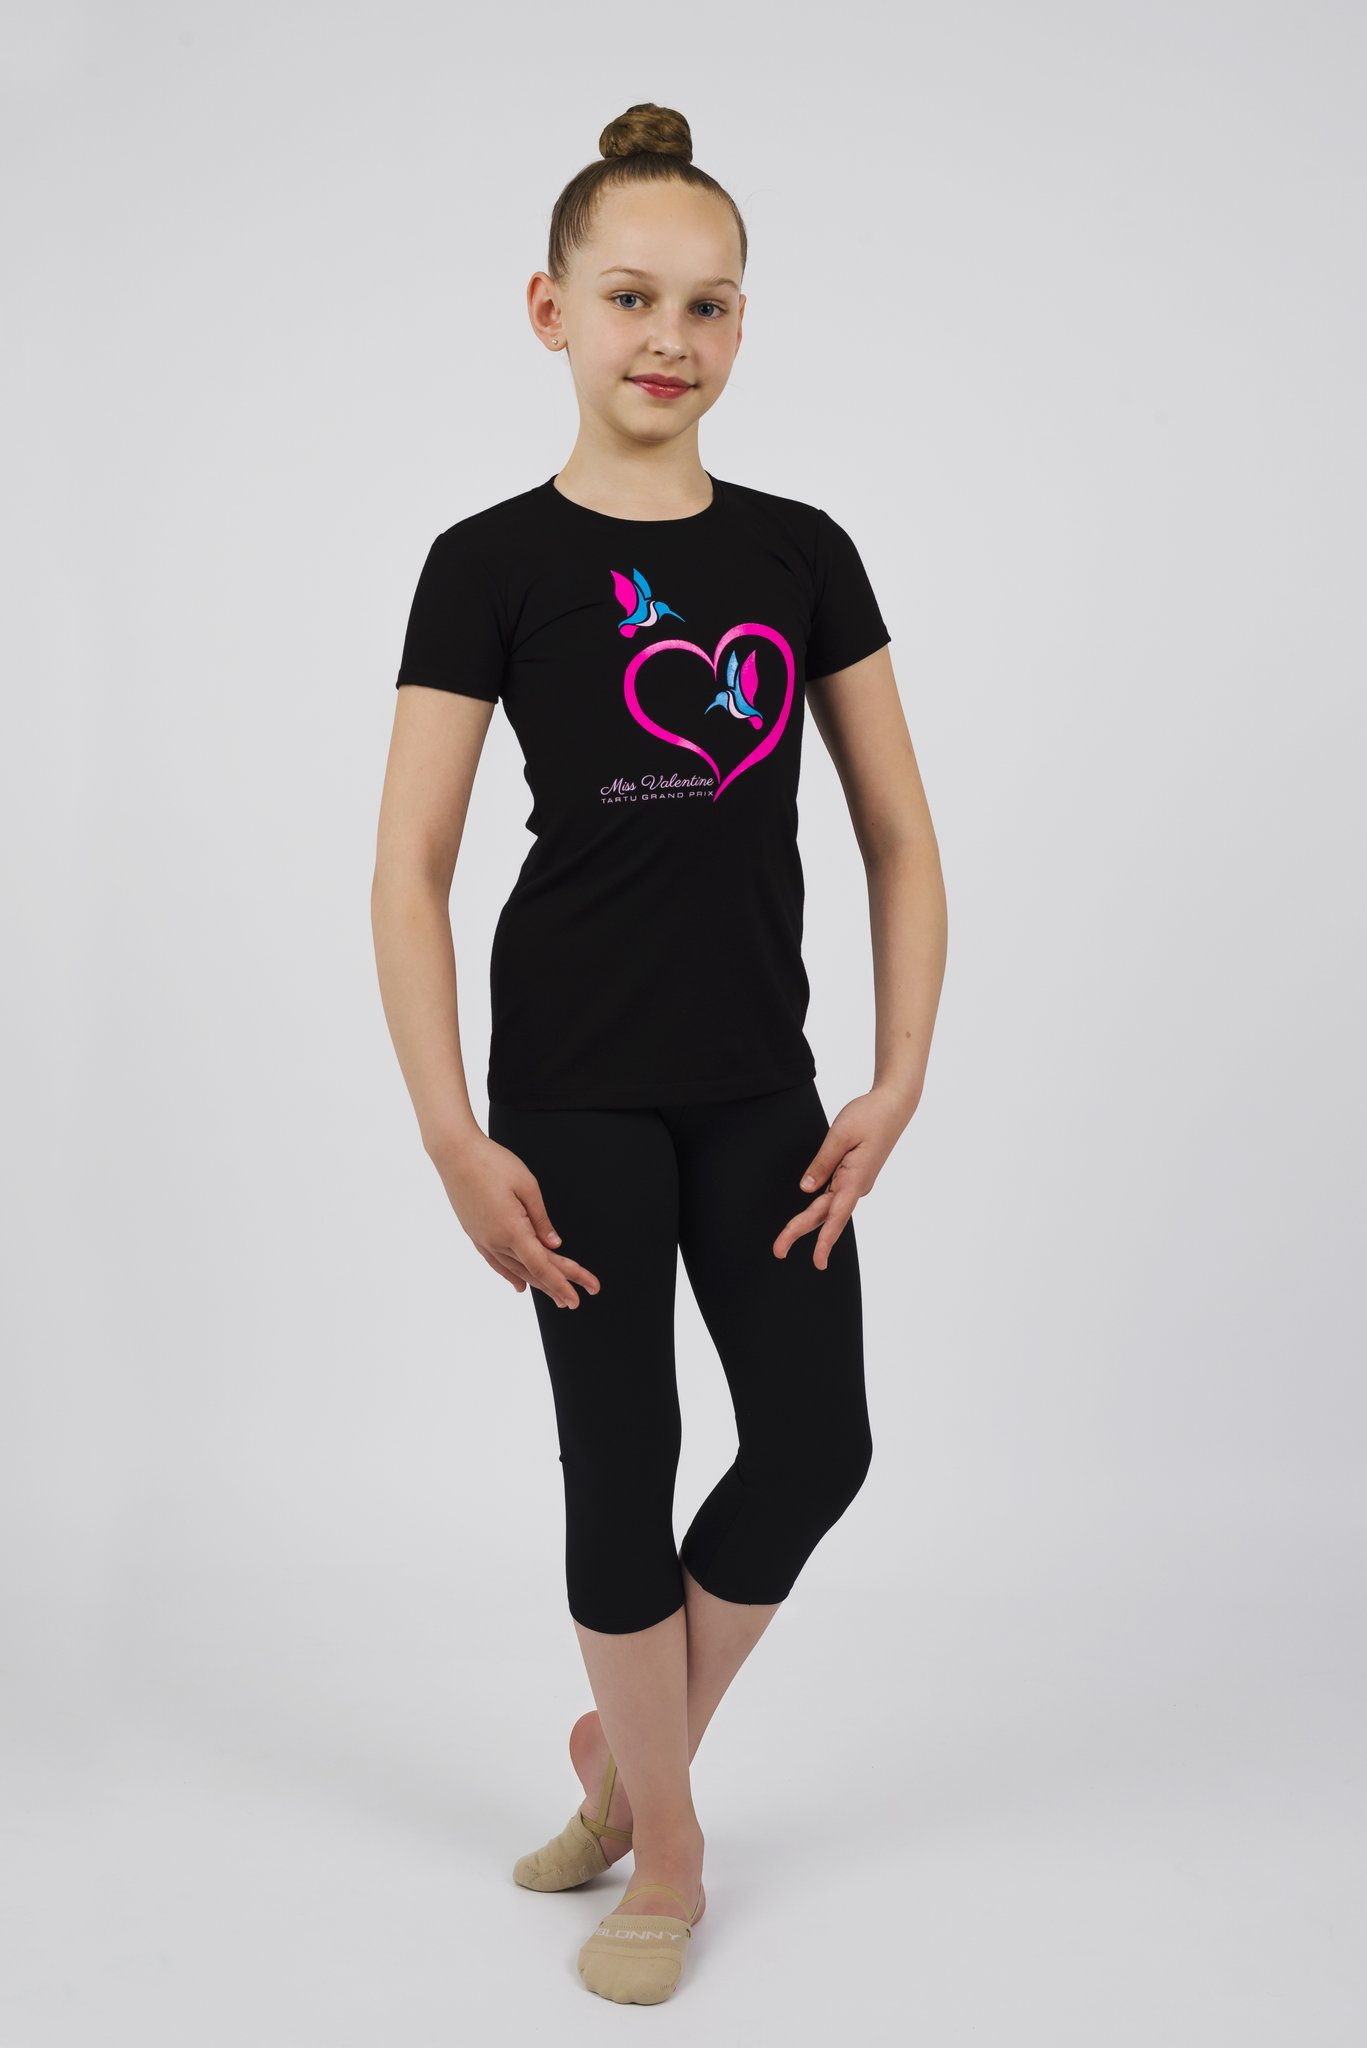 Girls Grand Prix Tee